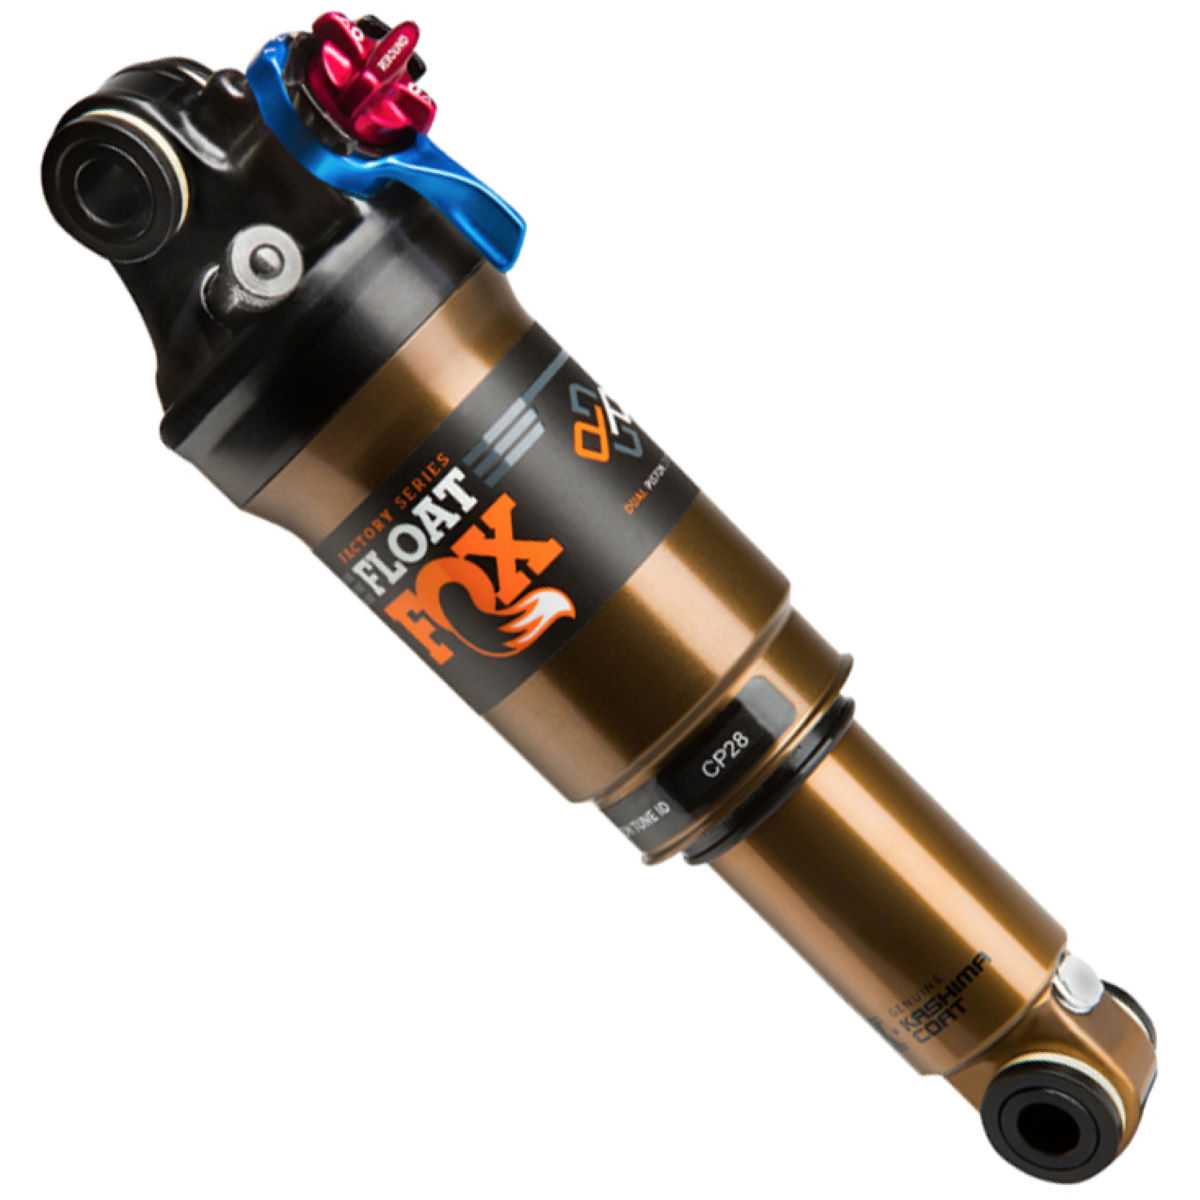 Fox Suspension Float DPS Factory Evol Rear Shock - Amortiguadores traseros